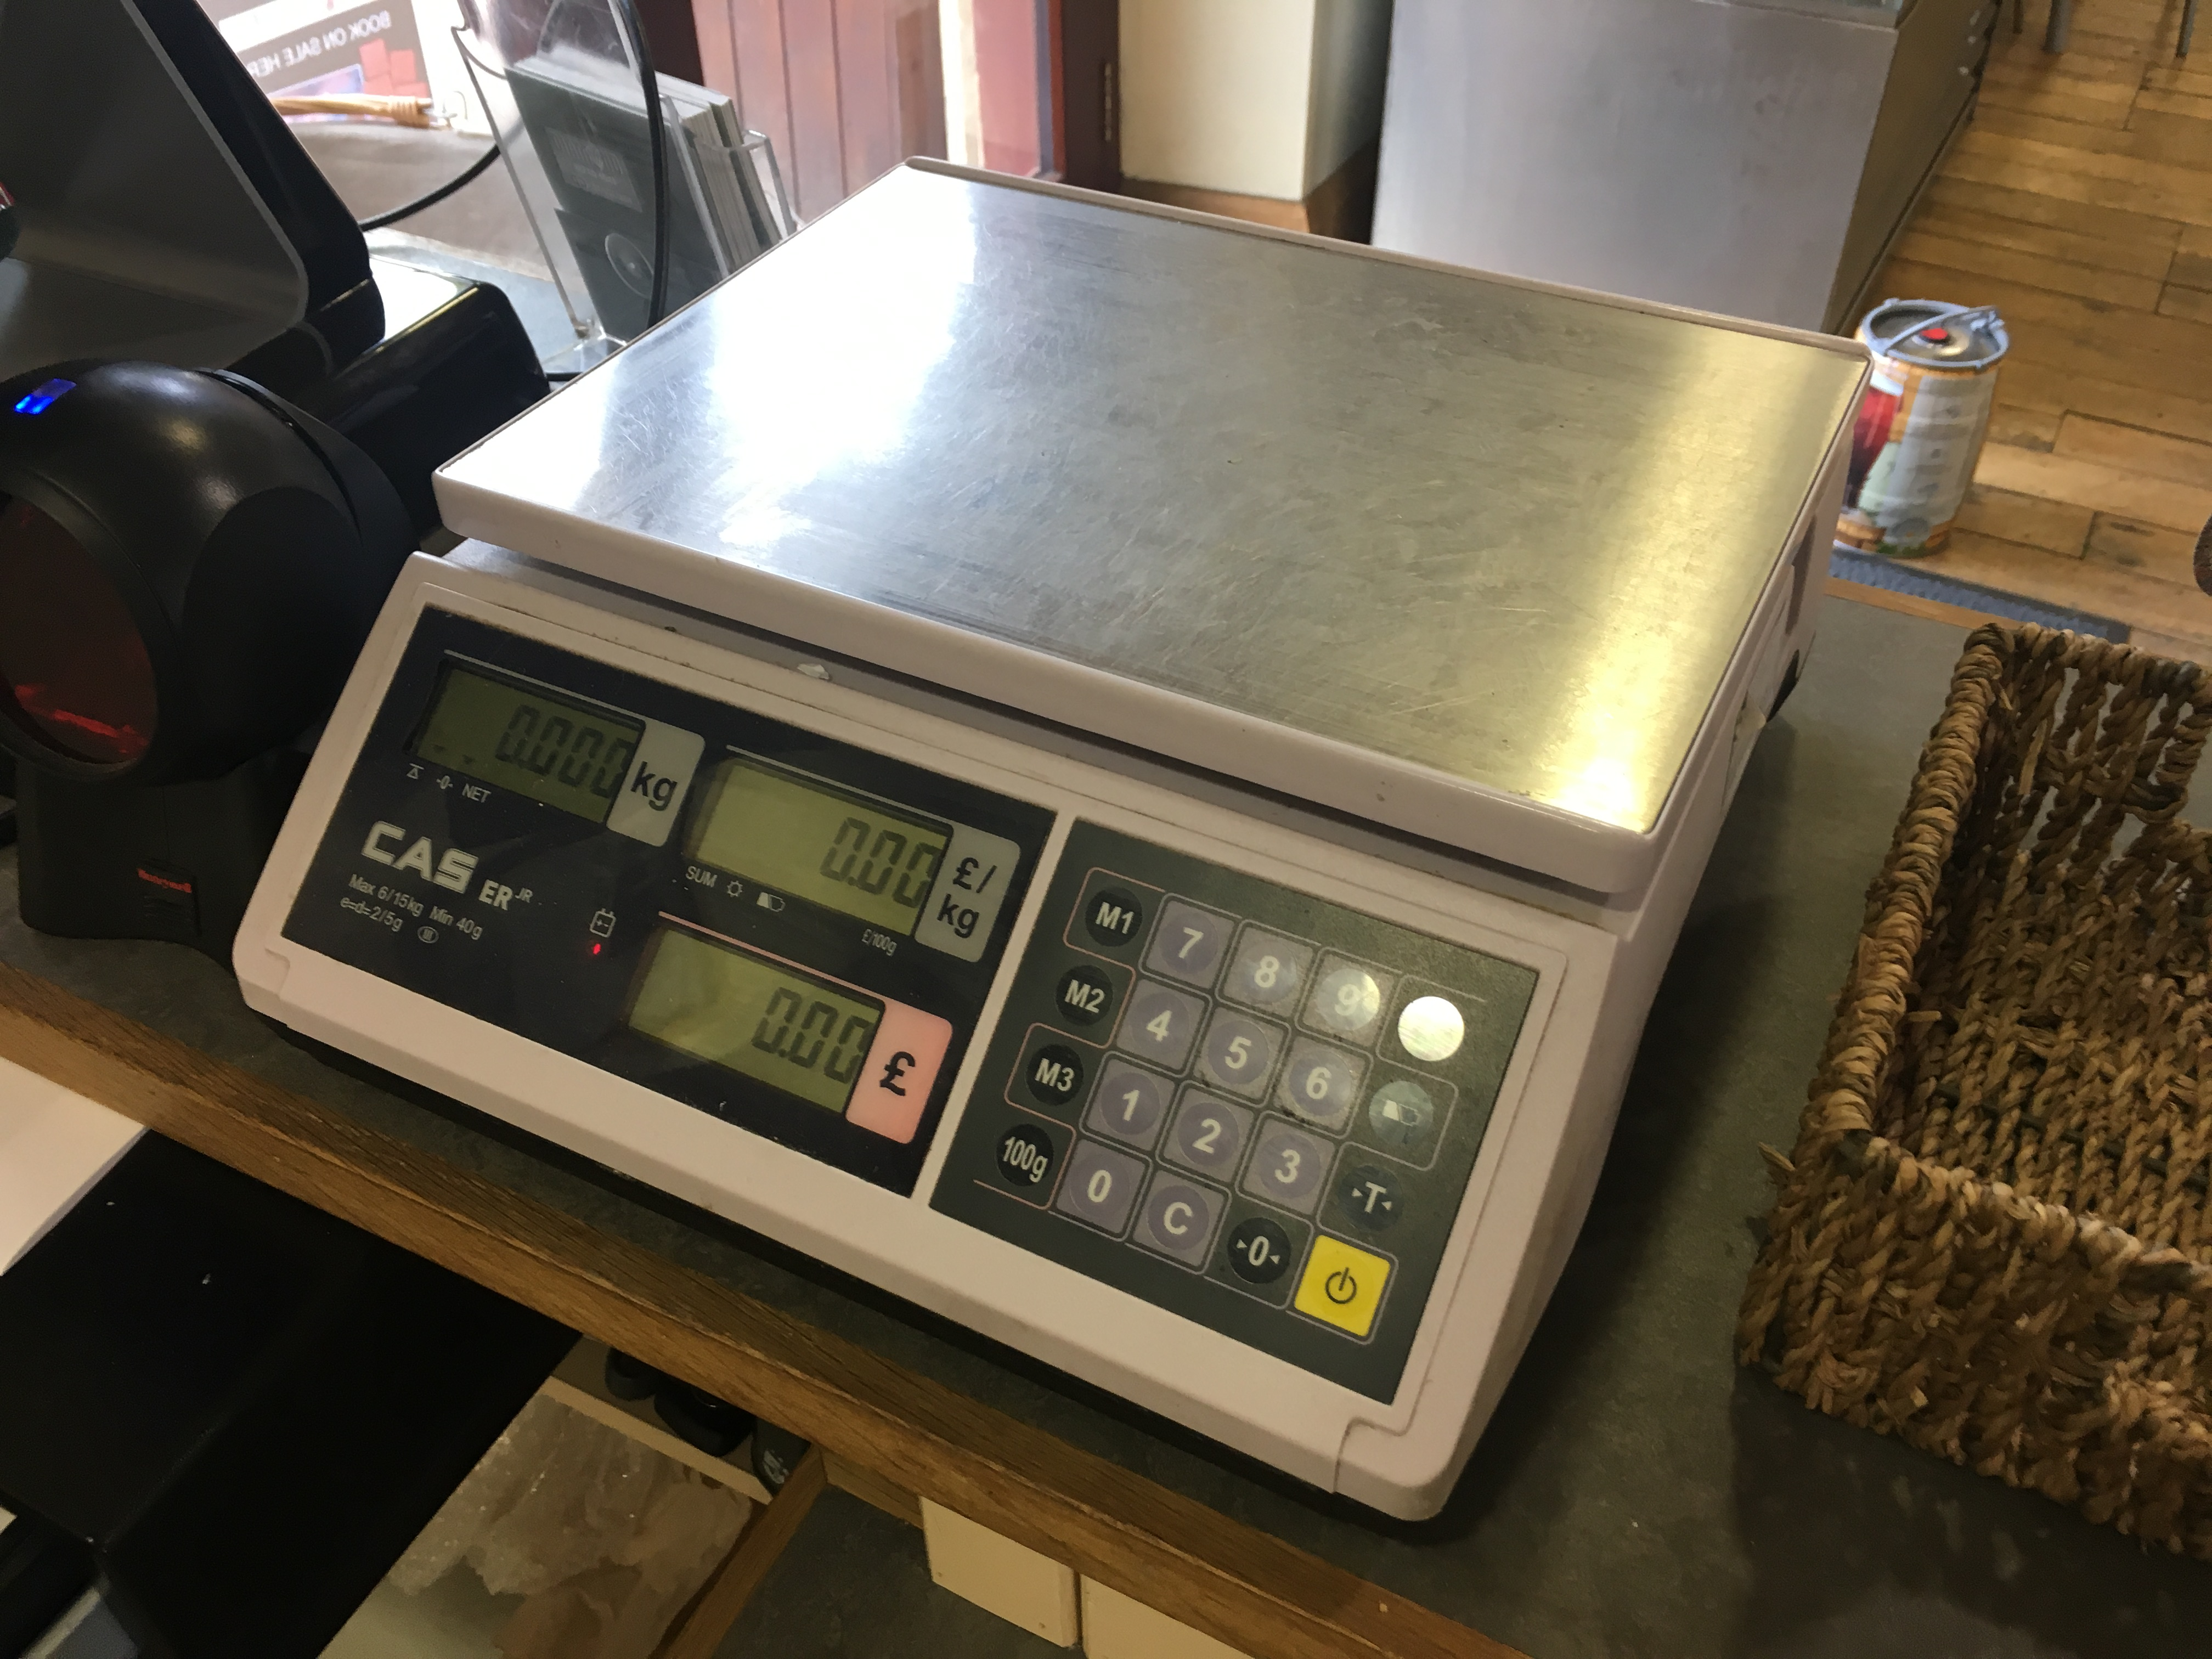 Lot 19 - CAS Weighing Scale